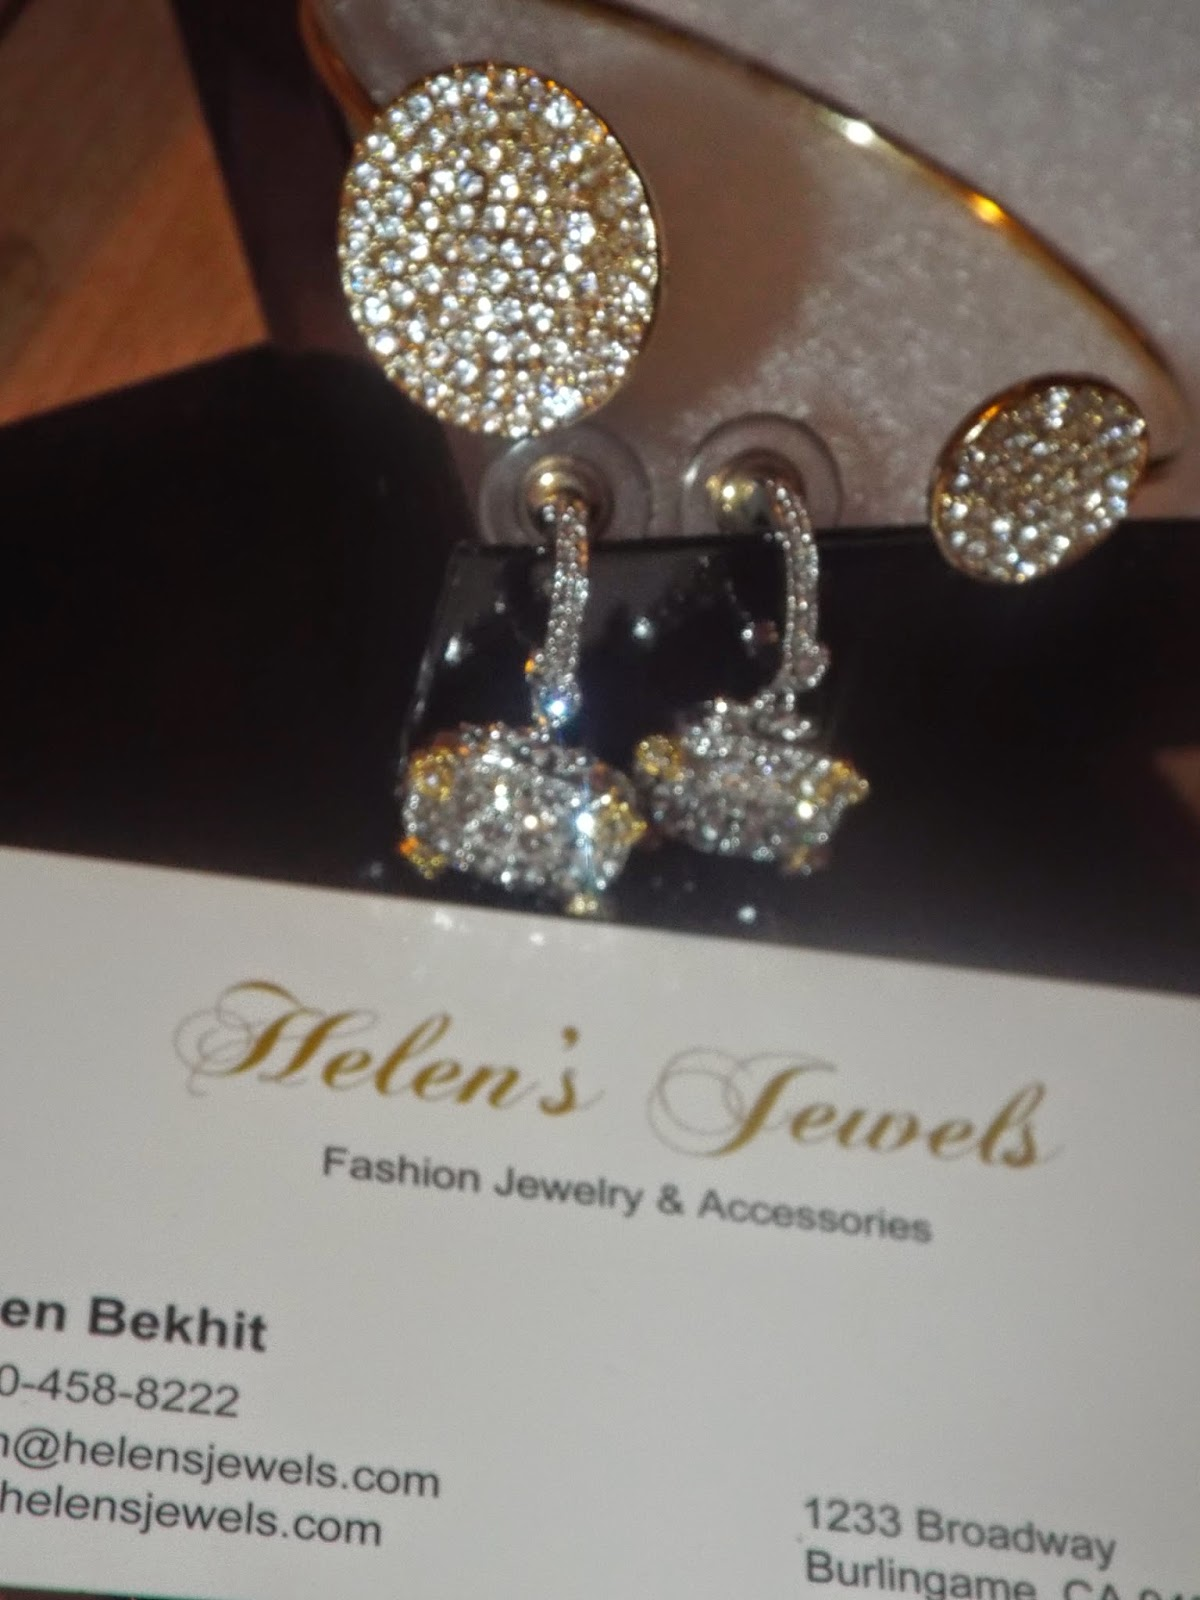 Another look at the set:  Helen's Jewel's